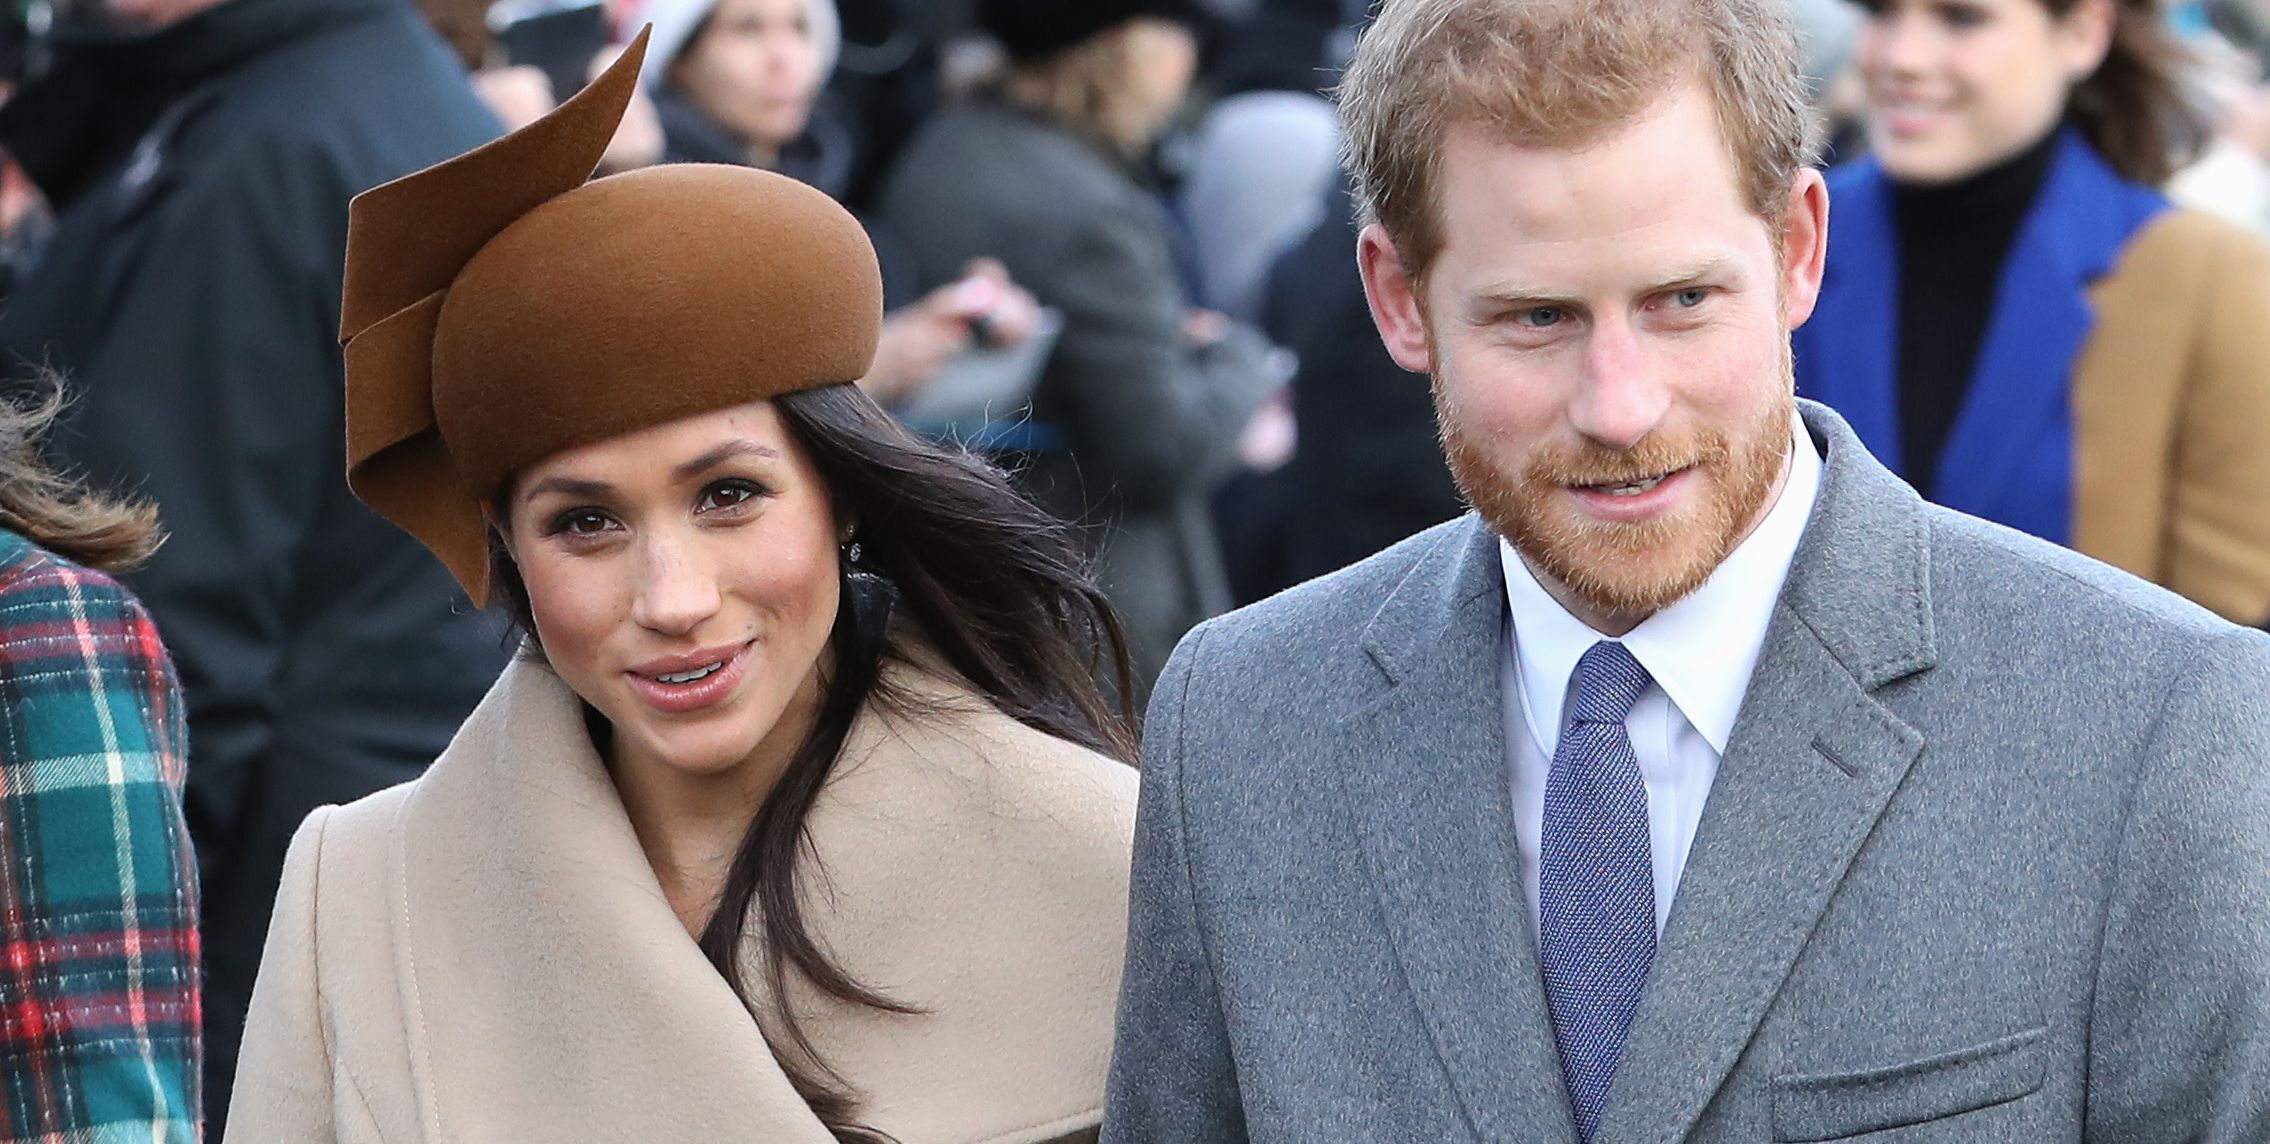 Meghan Markle and Prince Harry Secretly Attended a Christmas Reception Together